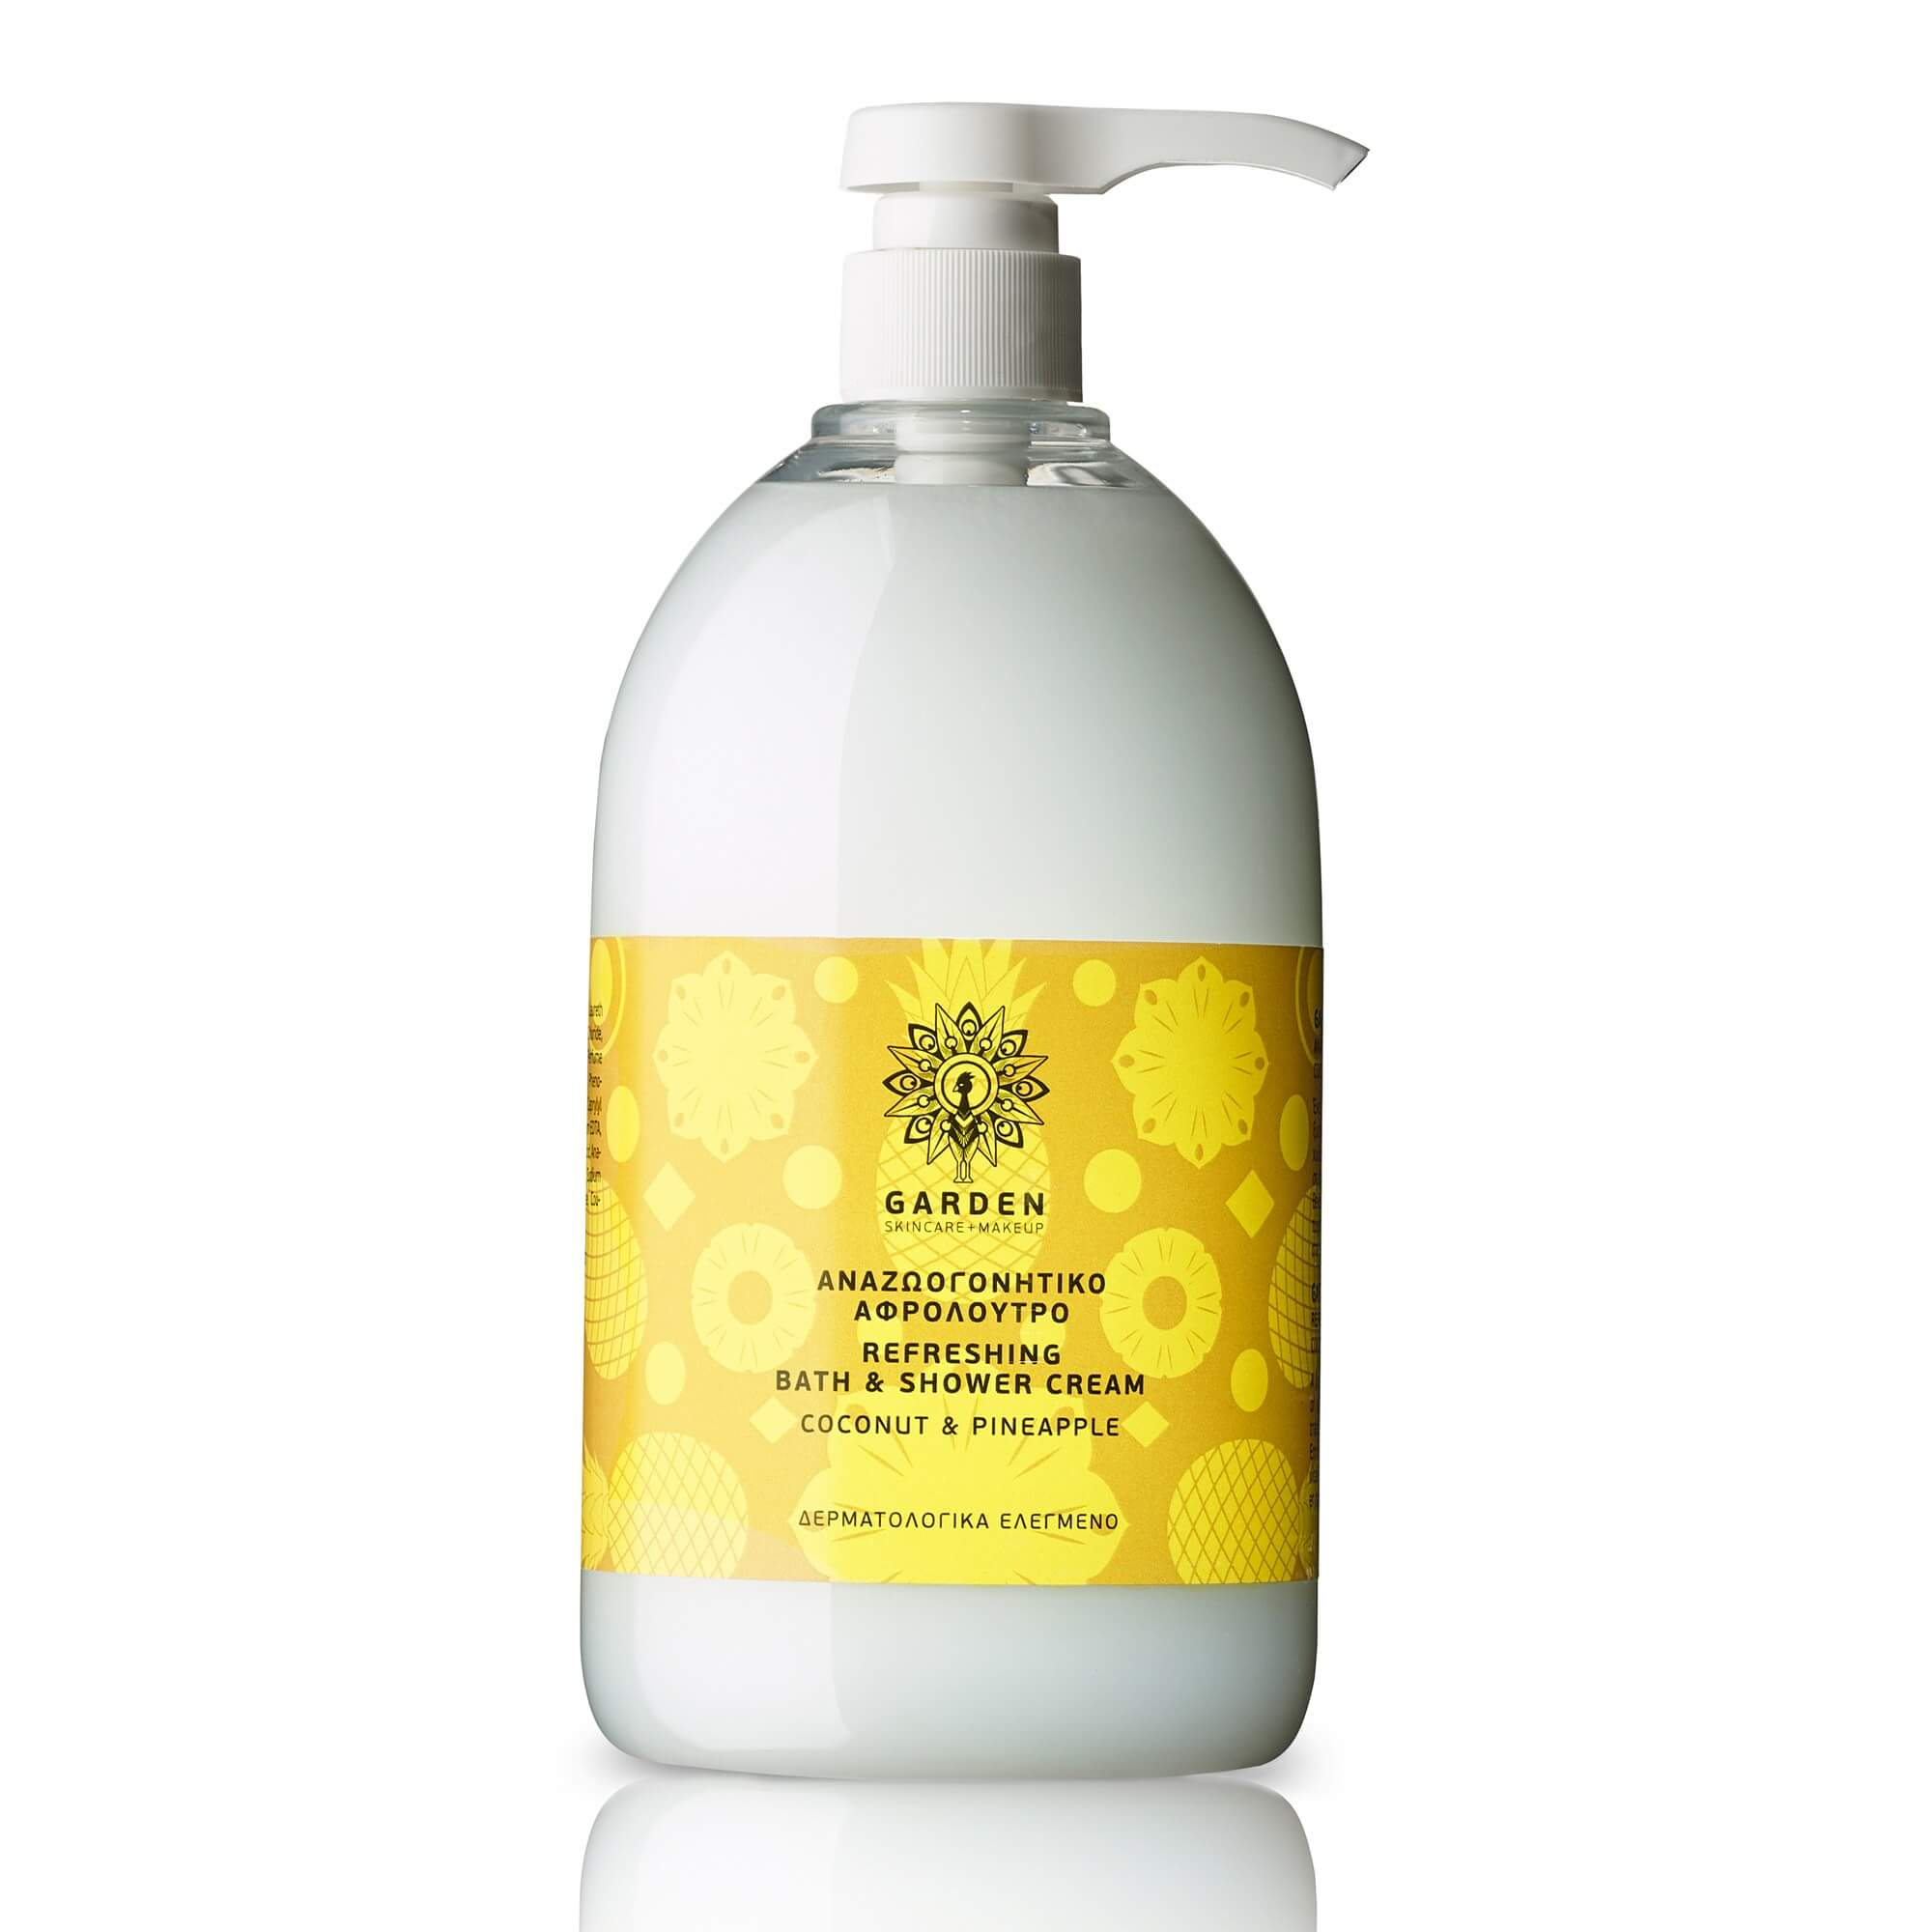 Garden of Panthenols Refreshing Bath & Shower Cream Coconut & Pineapple Αναζωογονητικό Αφρόλουτρο 1Lt